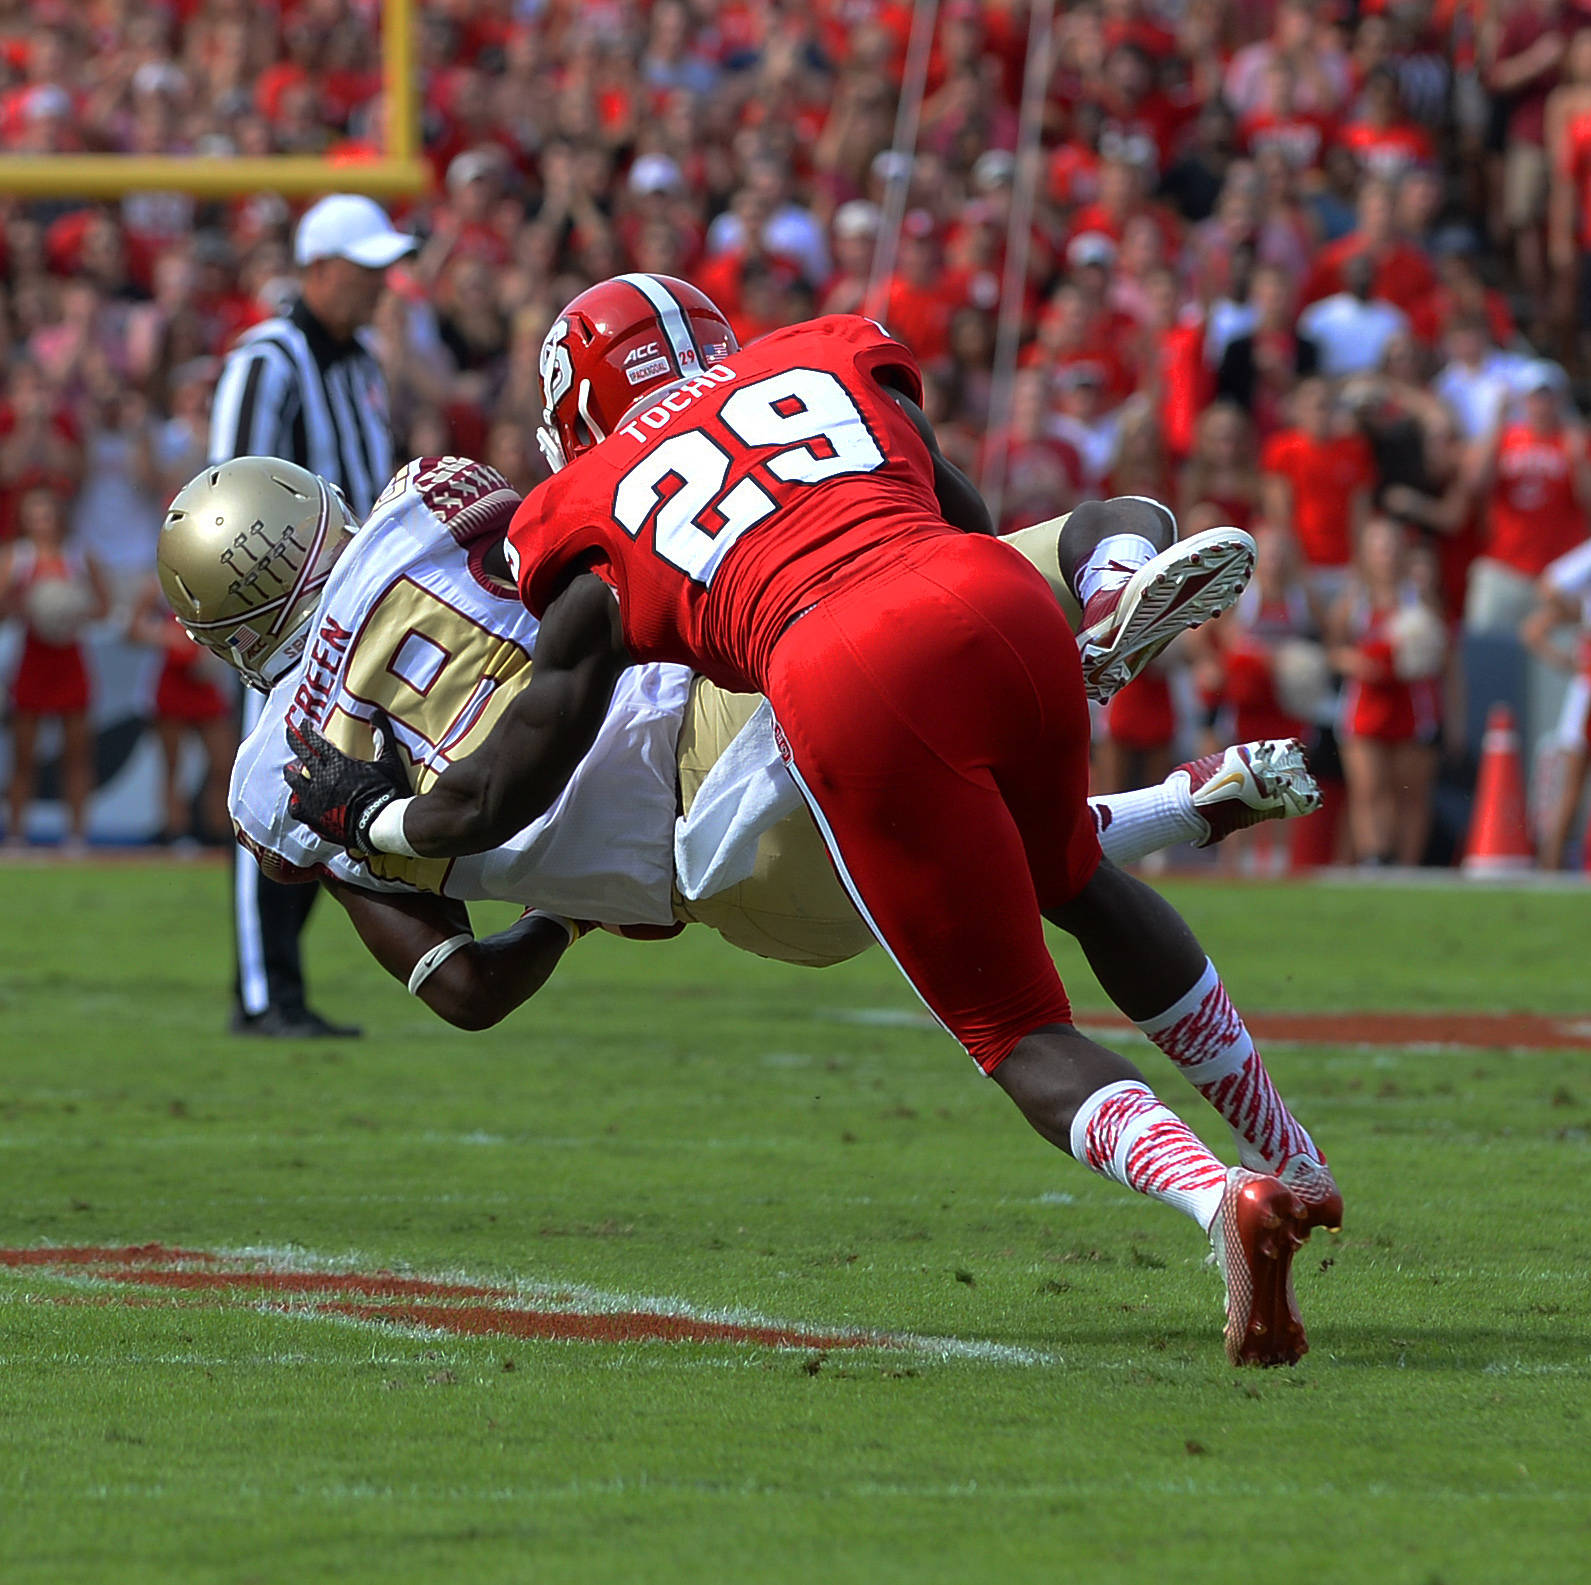 Football at NC State